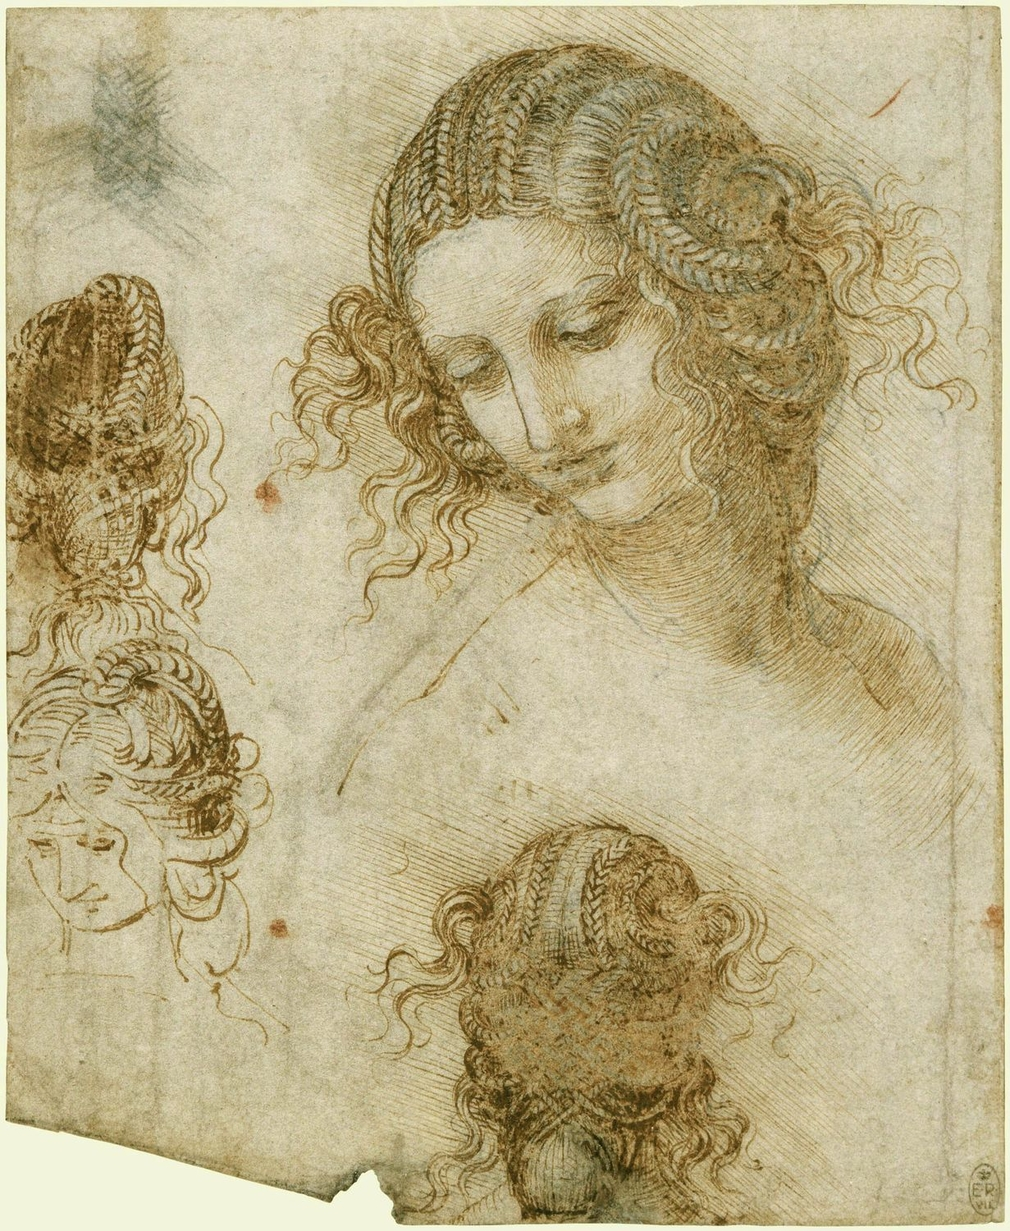 Various sketches of the head of a woman: on the right is a sketch of the head turned to the left, looking down three quarters left, with the hair elaborately coiled and braided. Beneath this is a drawing of a head seen from the back. On the left are three